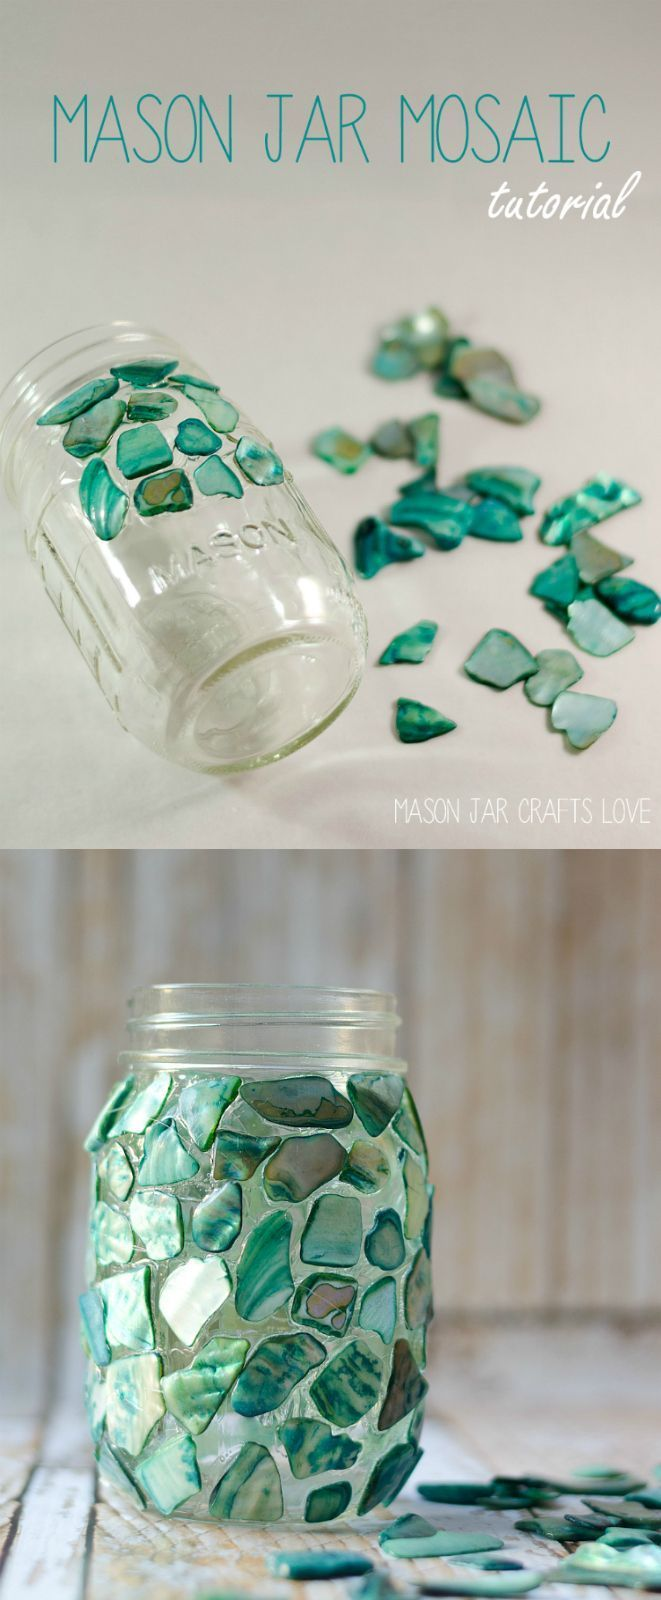 Crafts With Mason Jars Best 20 Mason Jar Crafts Ideas On Pinterest Mason Jar Diy Jar